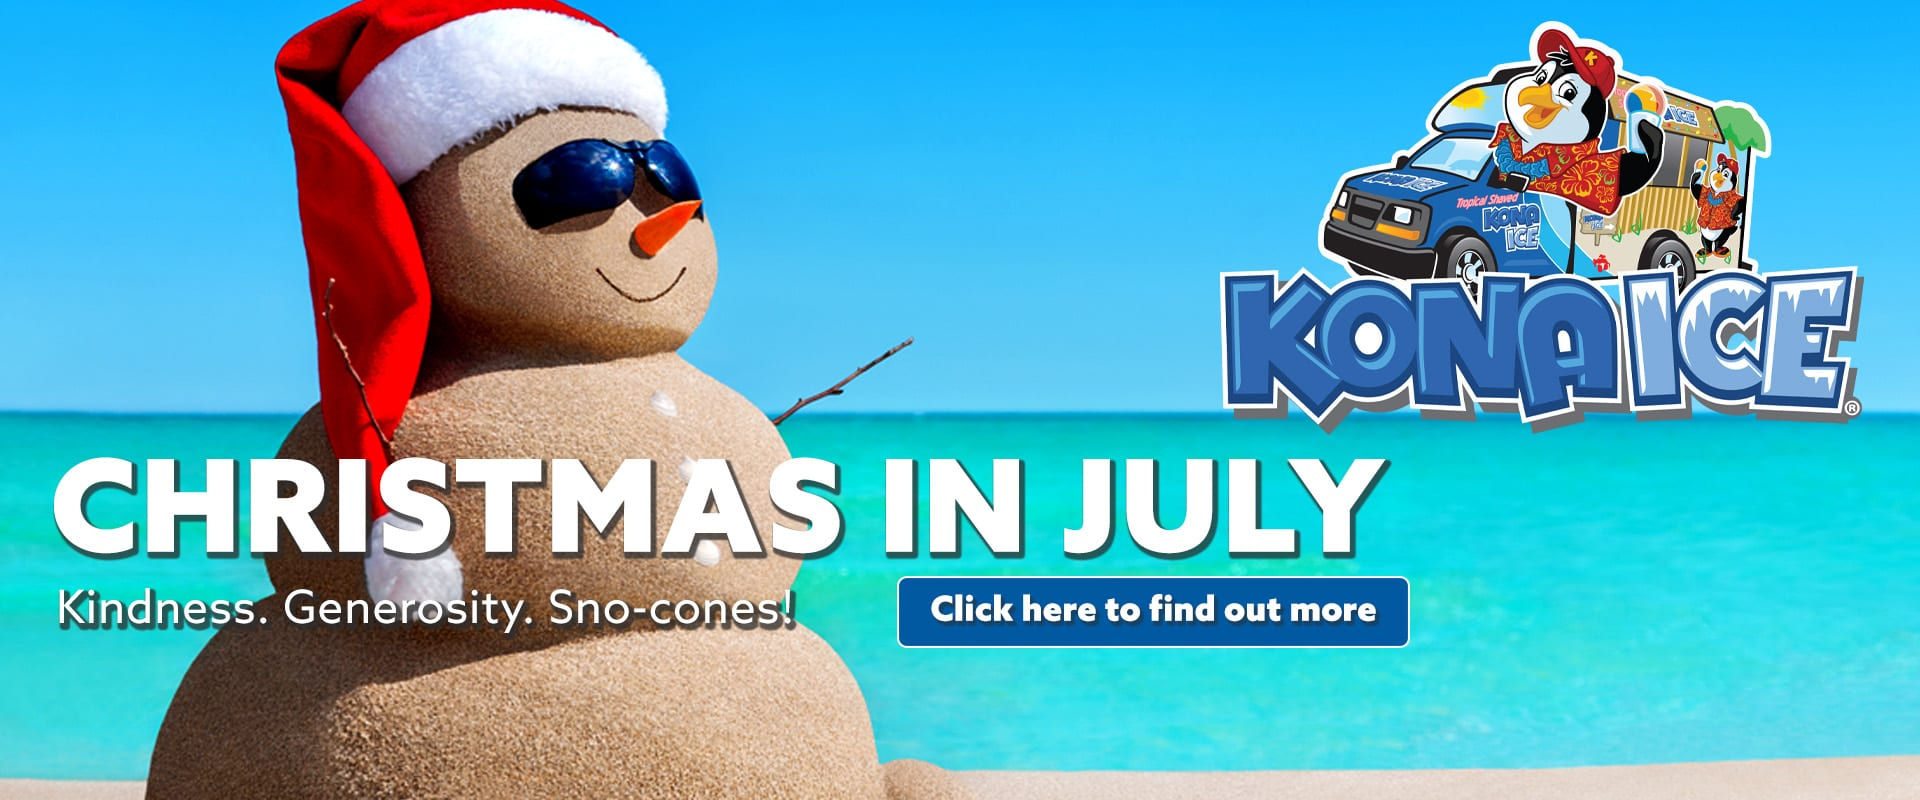 2019_Christmas_in_July_KGLY